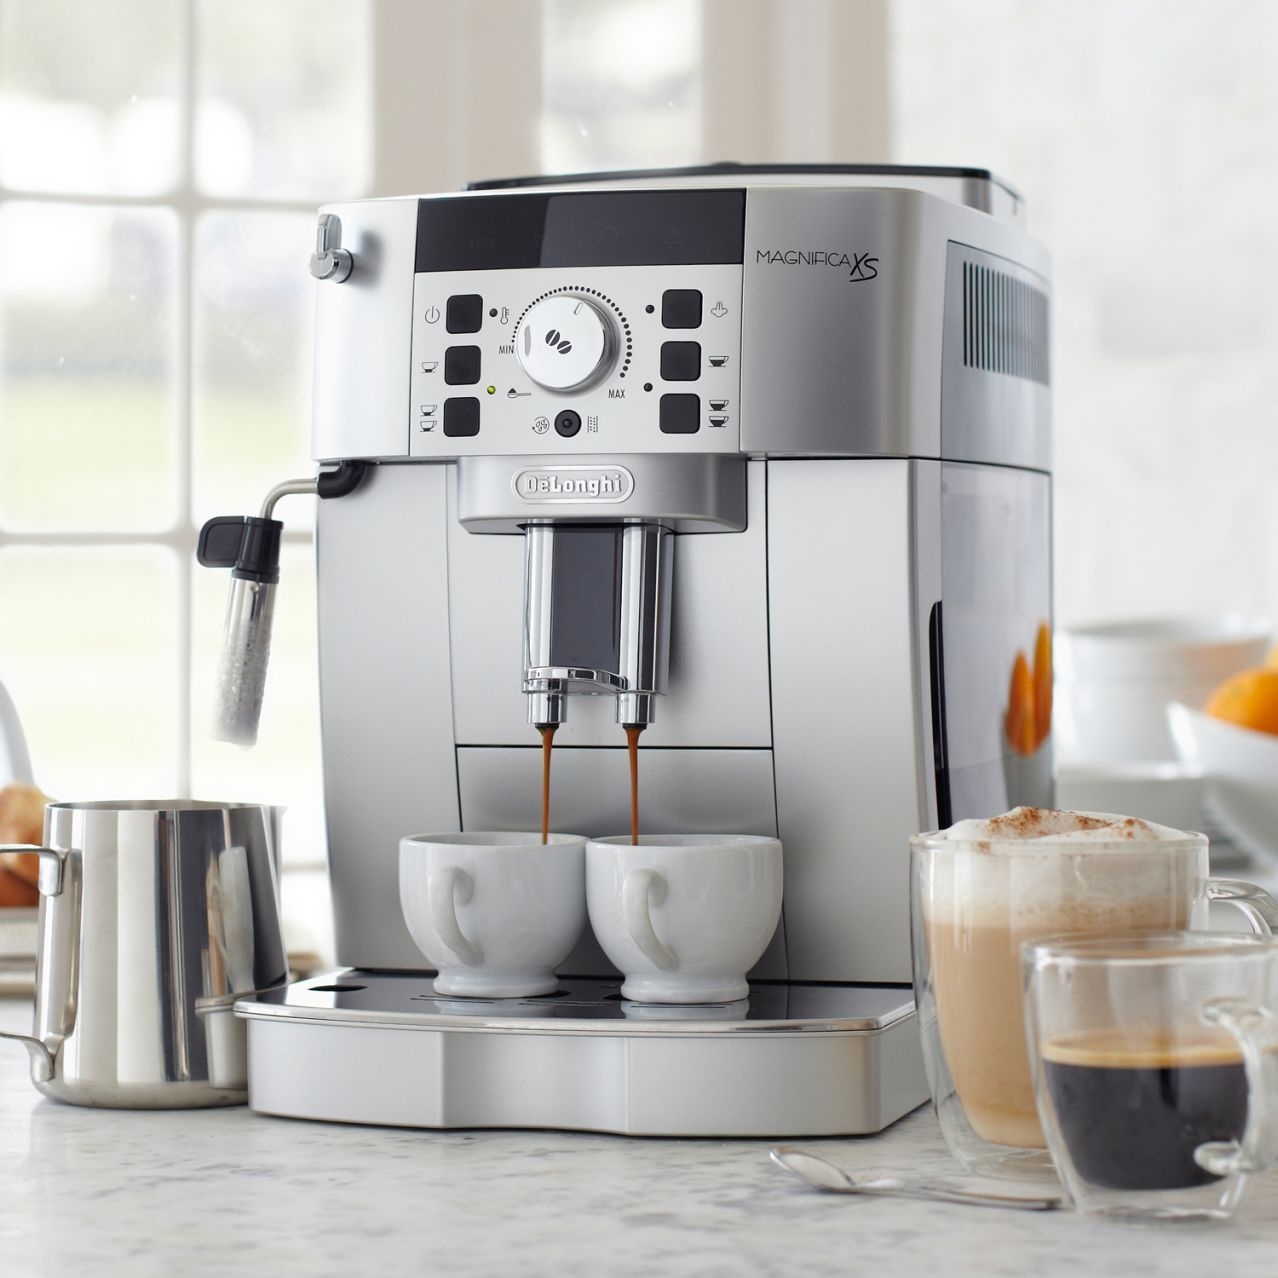 De'Longhi® Magnifica XS Sur La Table Automatic